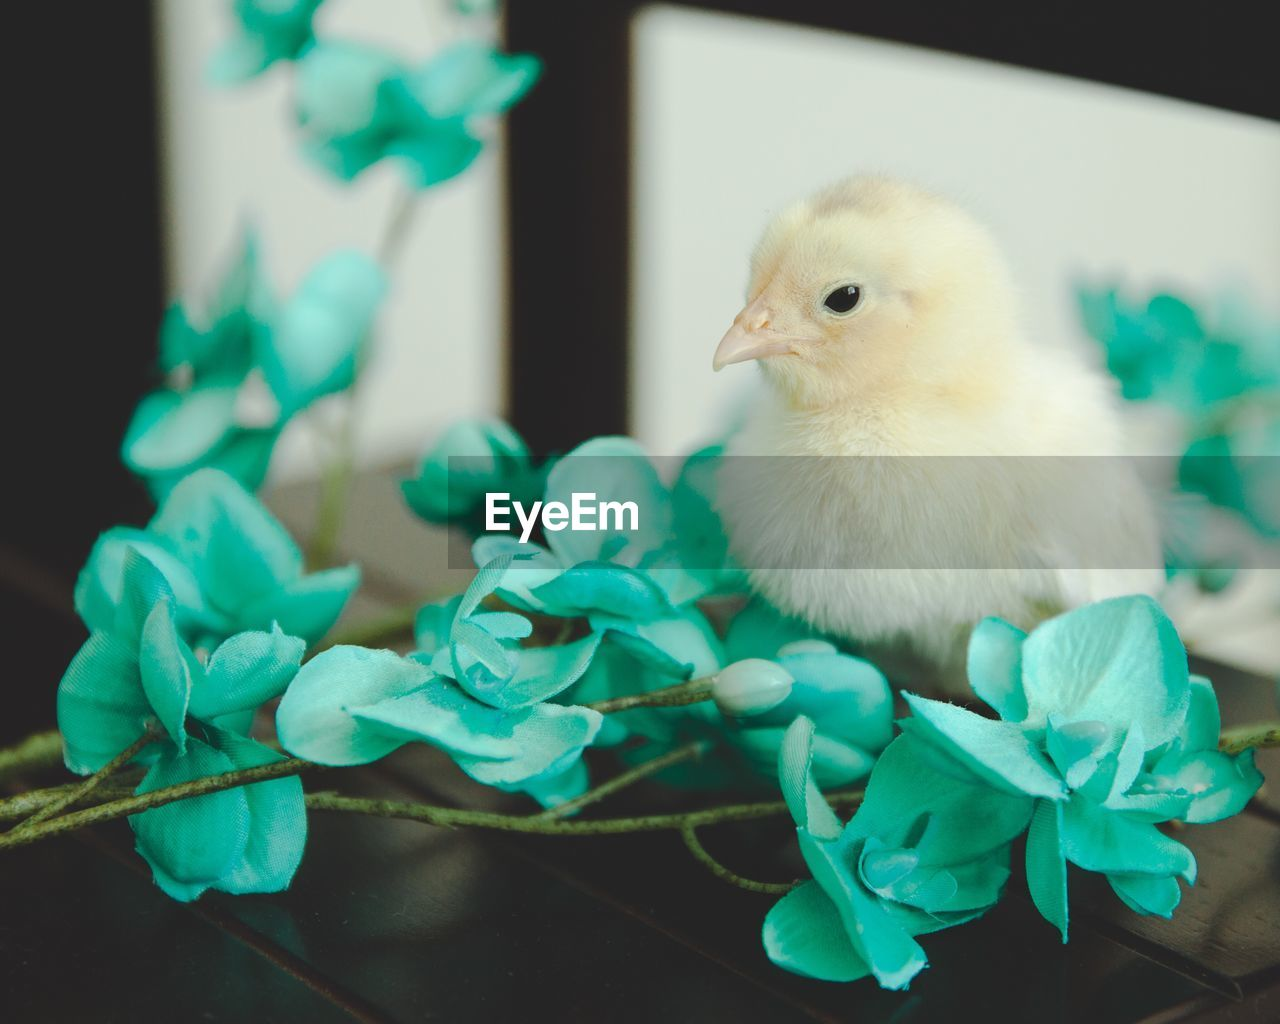 bird, animal, animal themes, vertebrate, young bird, young animal, domestic animals, close-up, baby chicken, livestock, plant, nature, no people, pets, one animal, domestic, green color, focus on foreground, chicken - bird, indoors